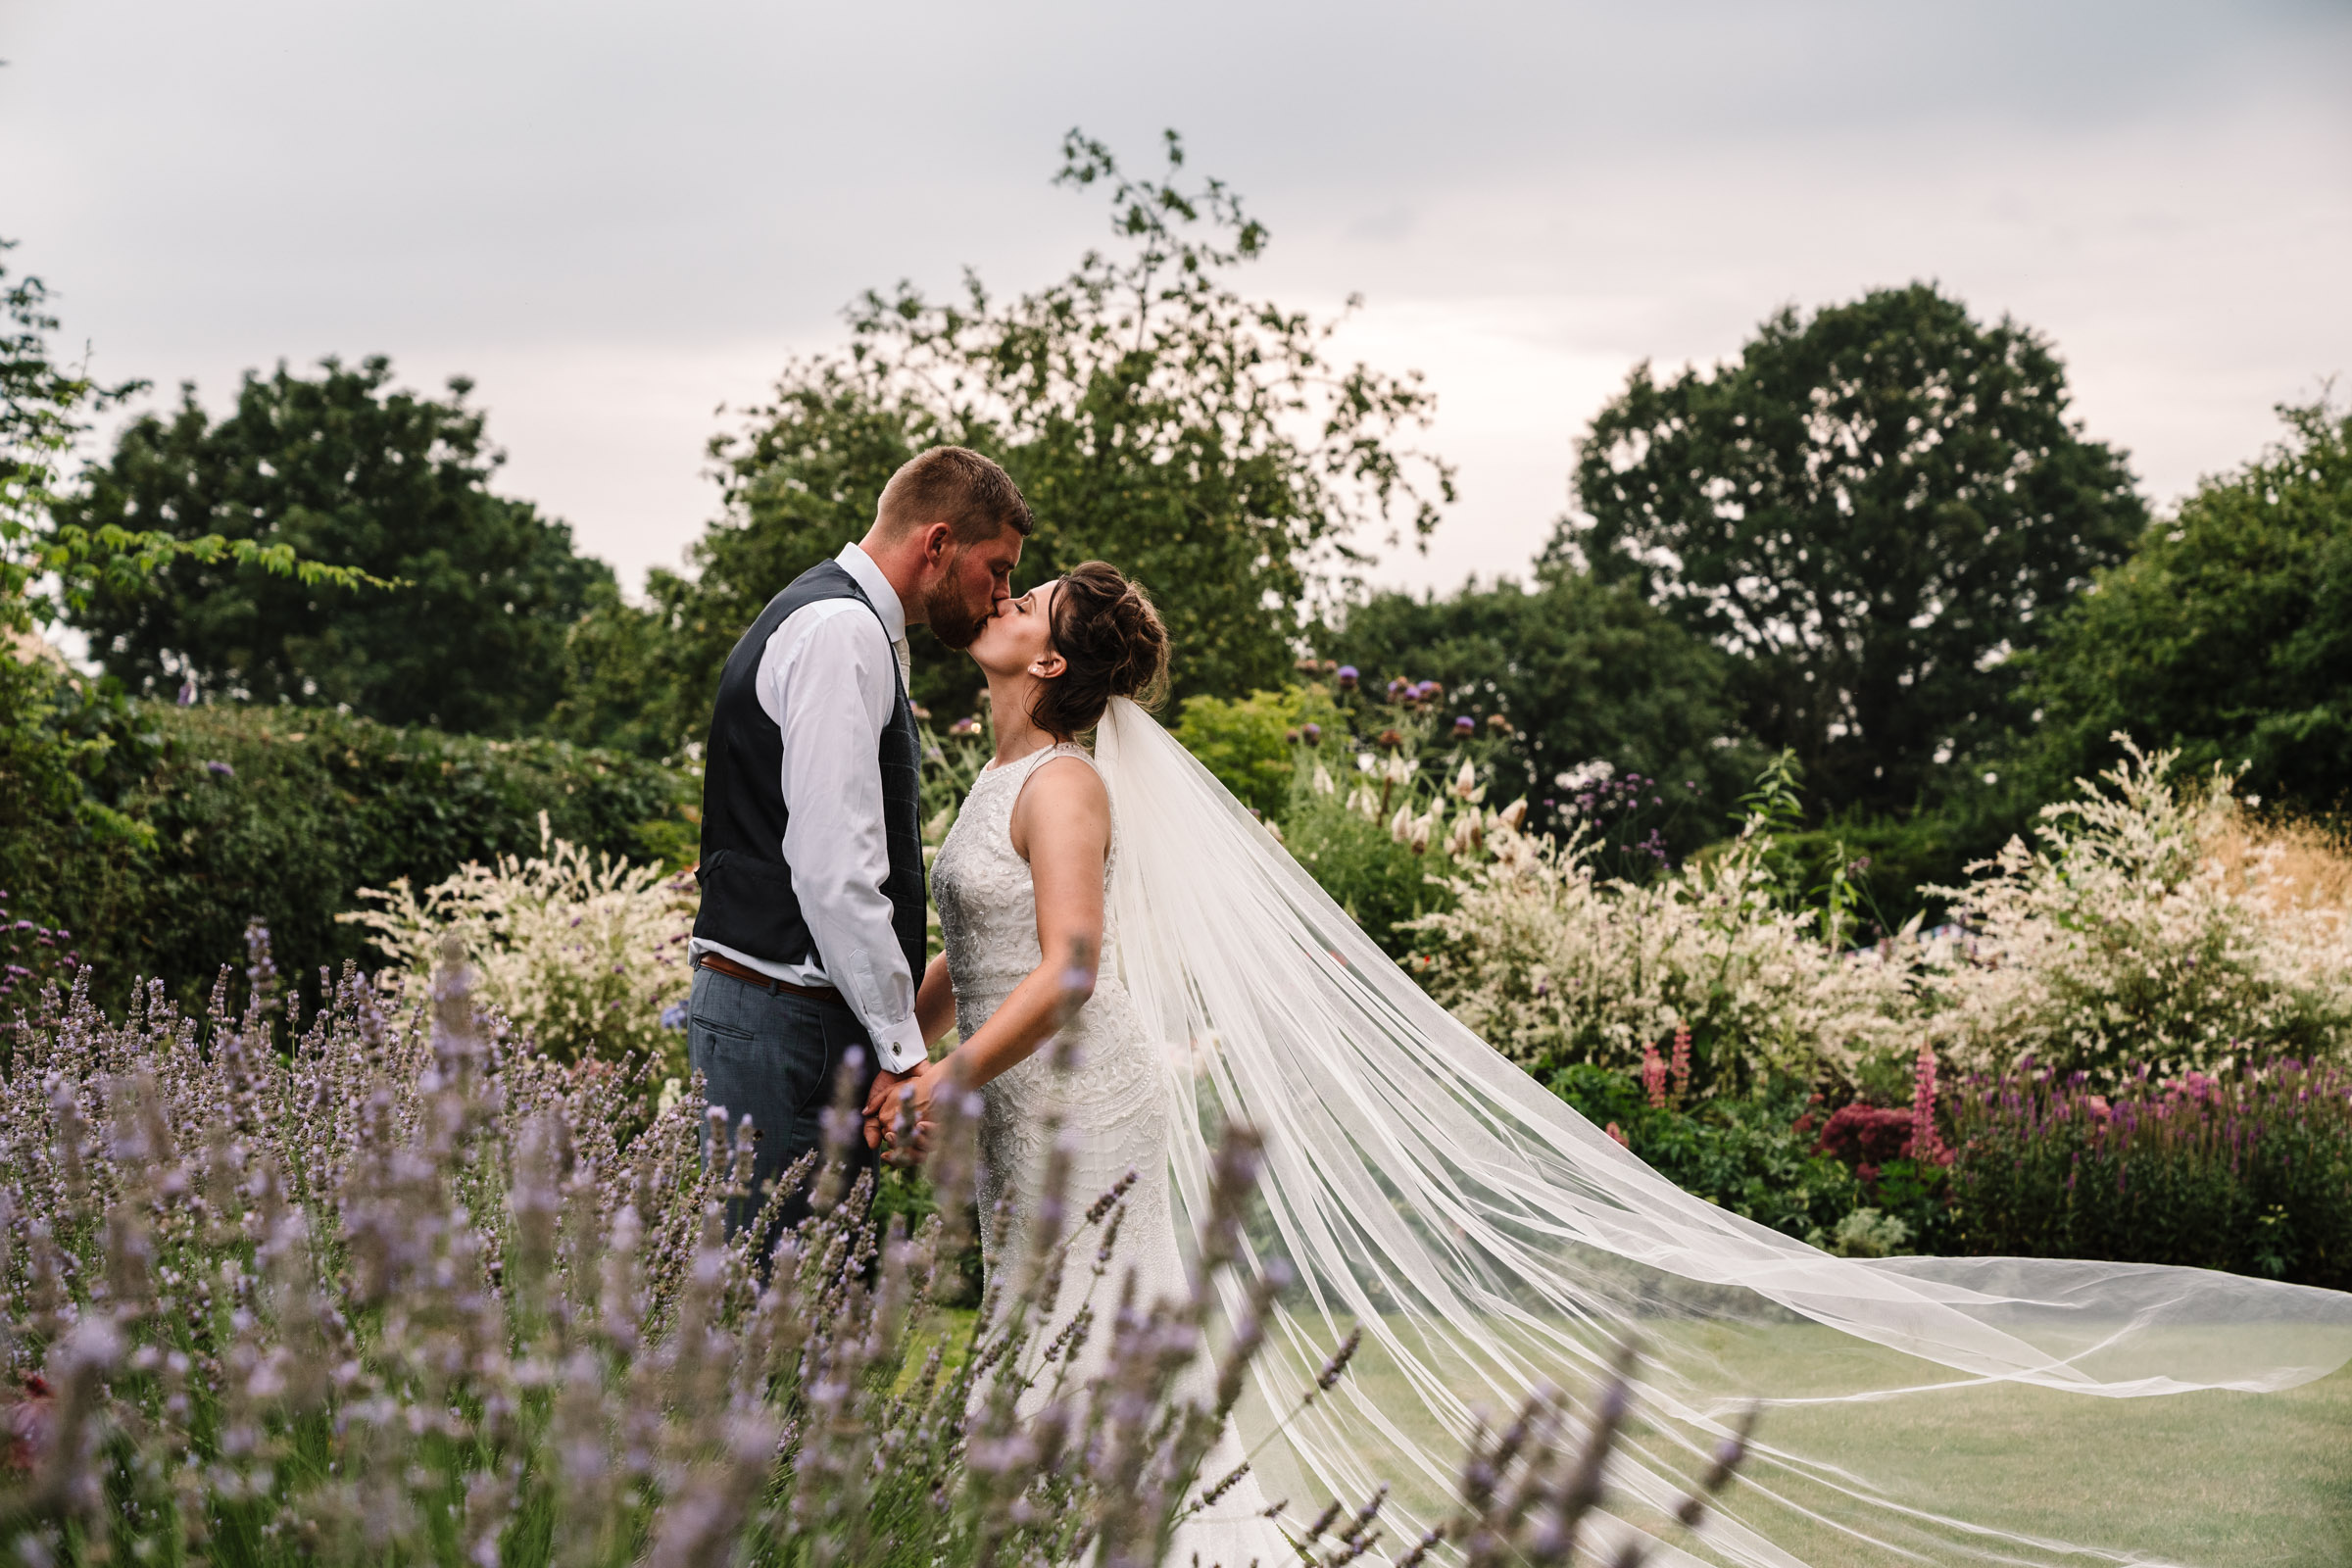 bride and groom kissing in gardens at tipi wedding